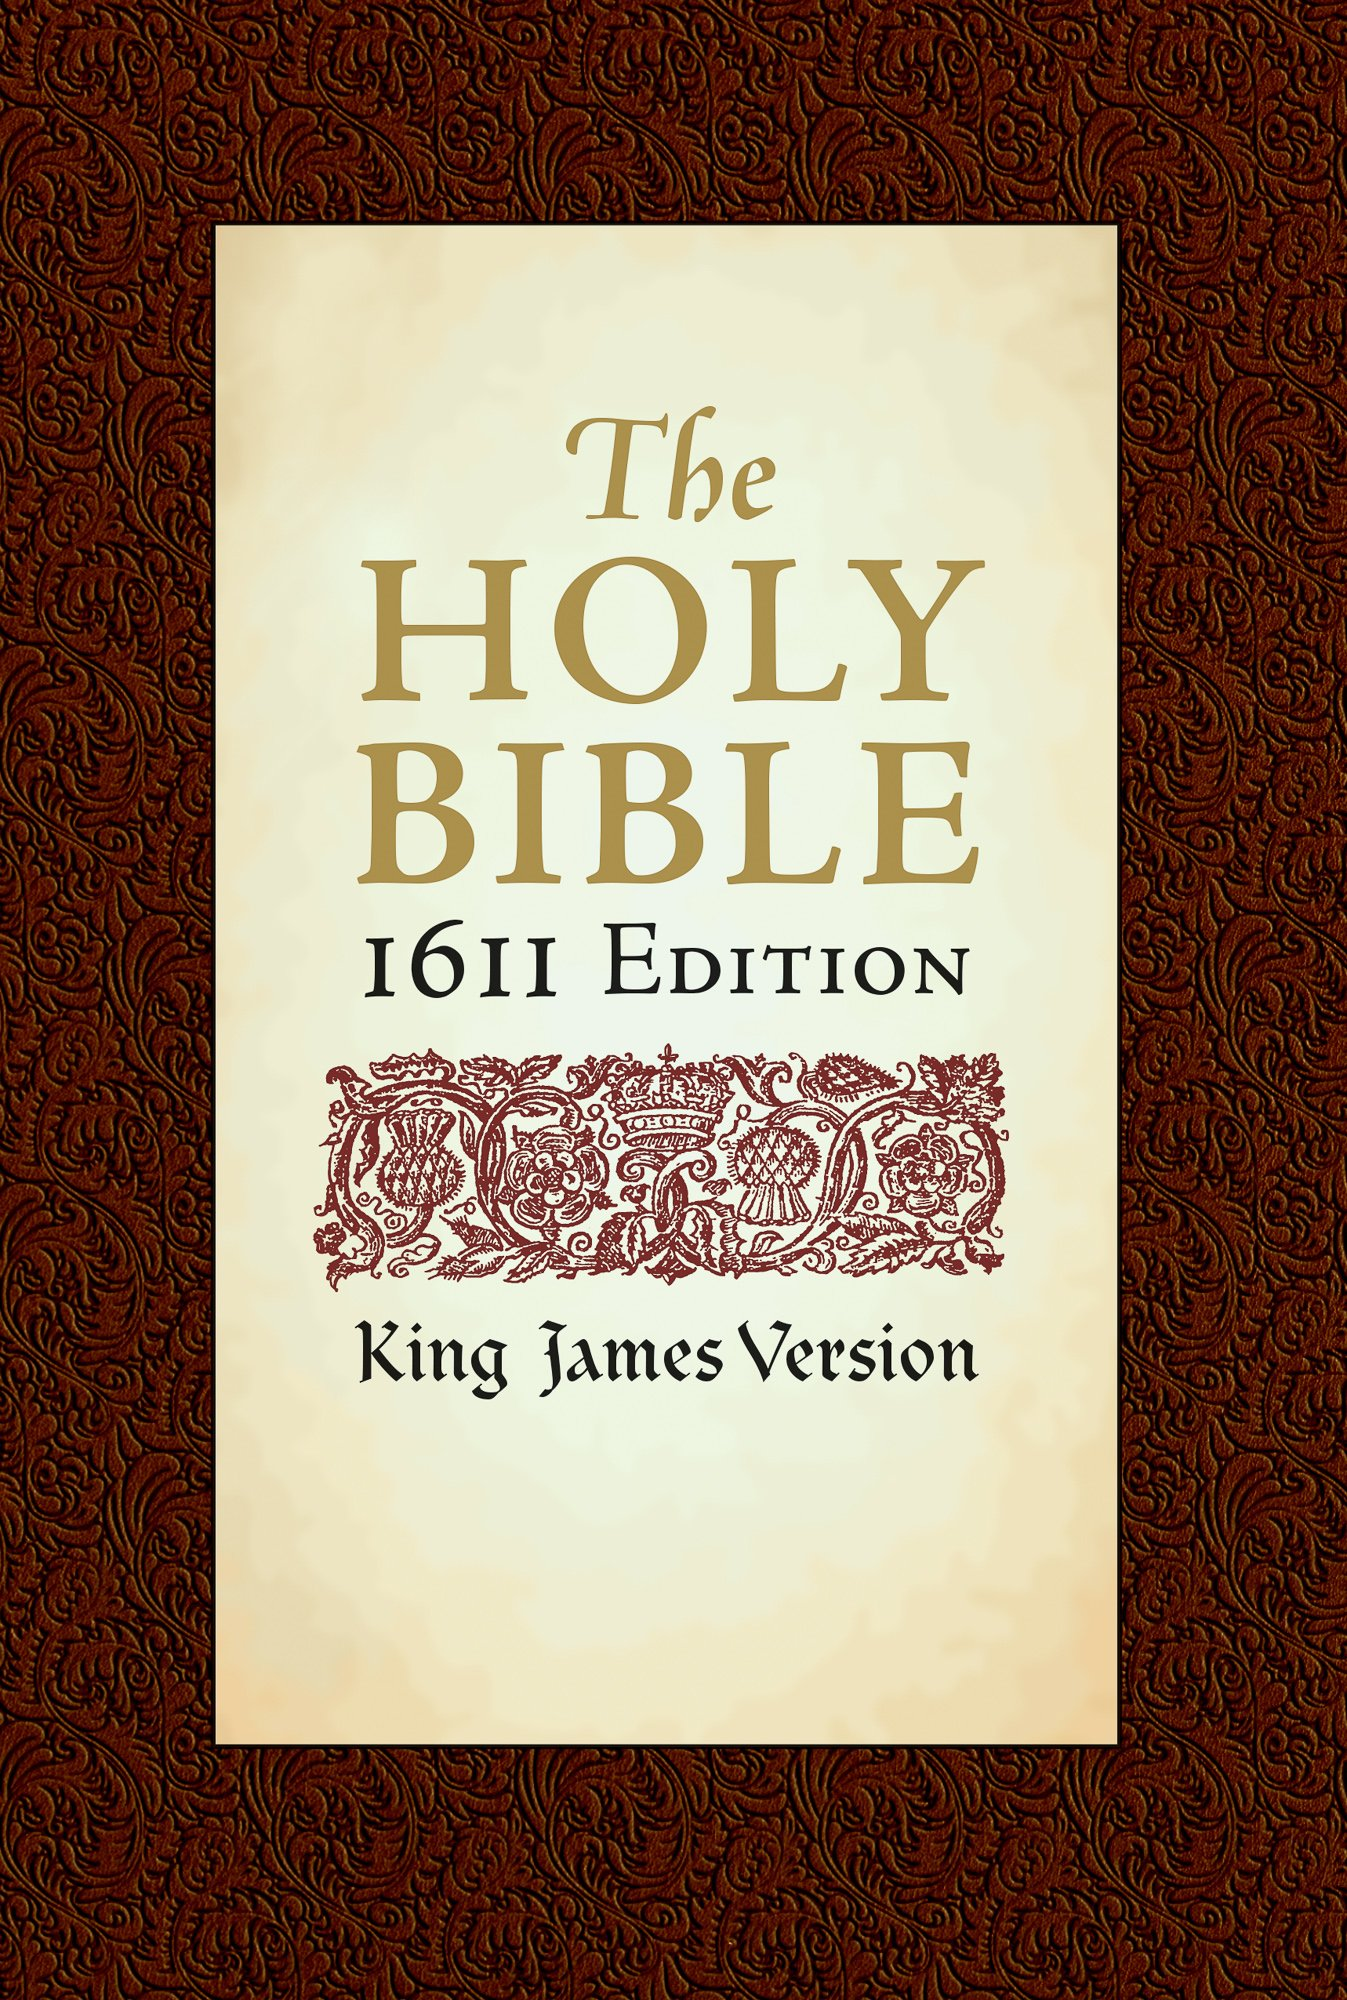 Holy Bible: King James Version, 1611 Edition: Hendrickson Publishers:  9781565638082: Amazon.com: Books